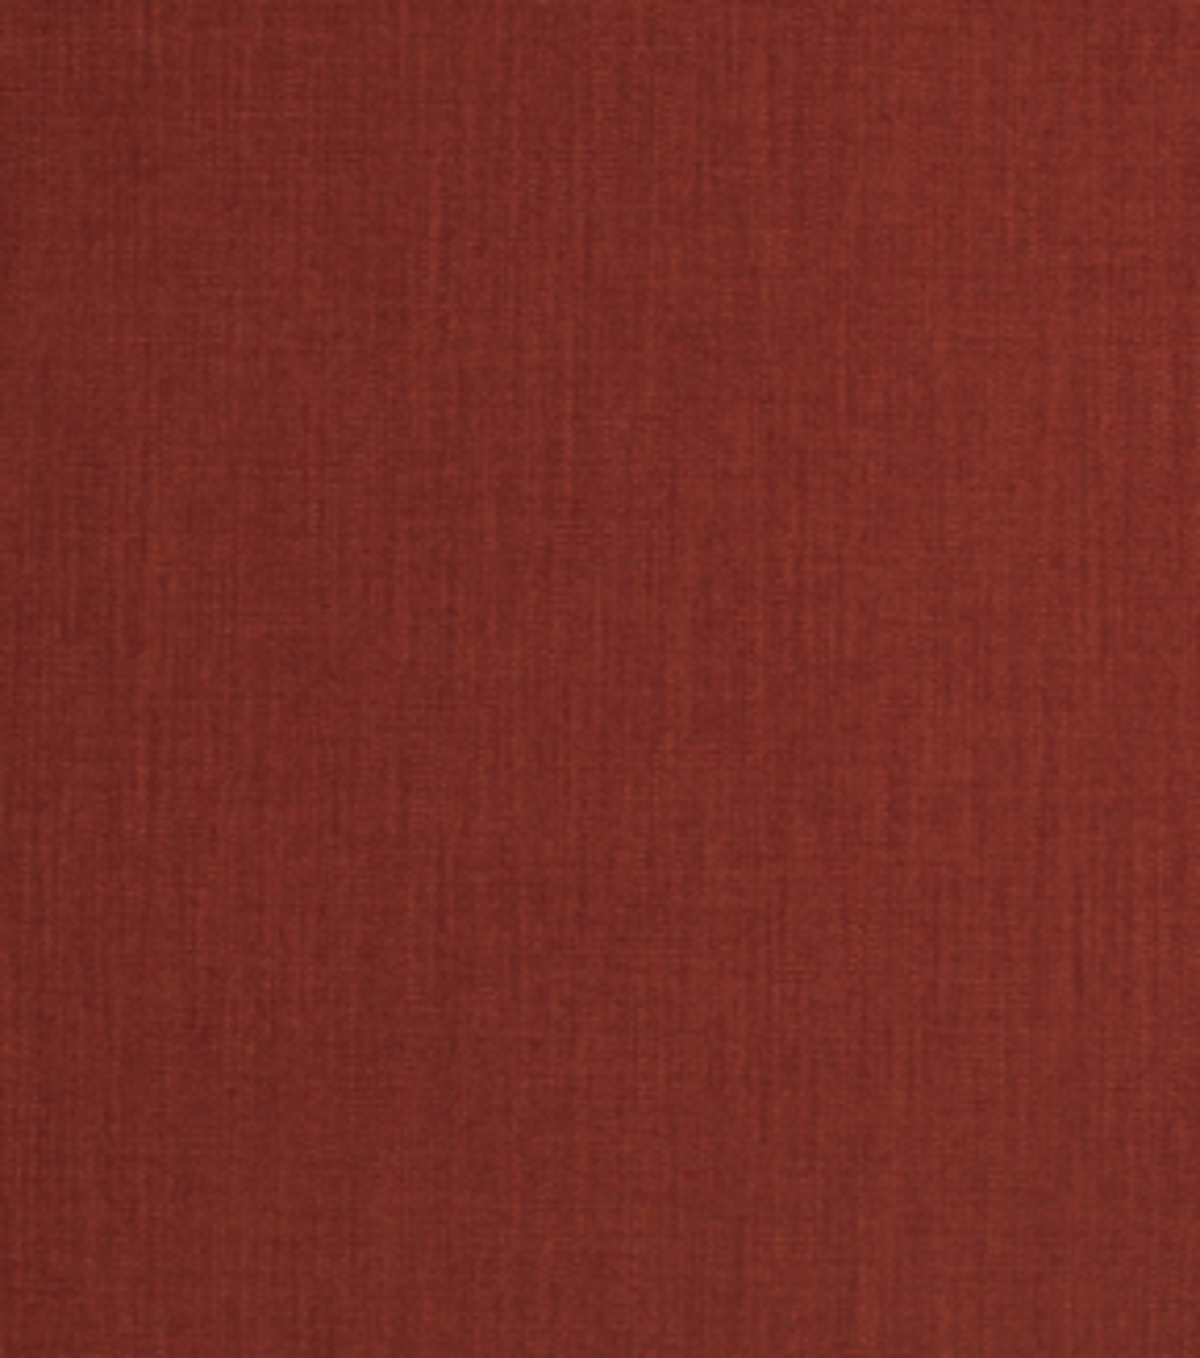 Home Decor 8\u0022x8\u0022 Fabric Swatch-Signature Series Media Paprika